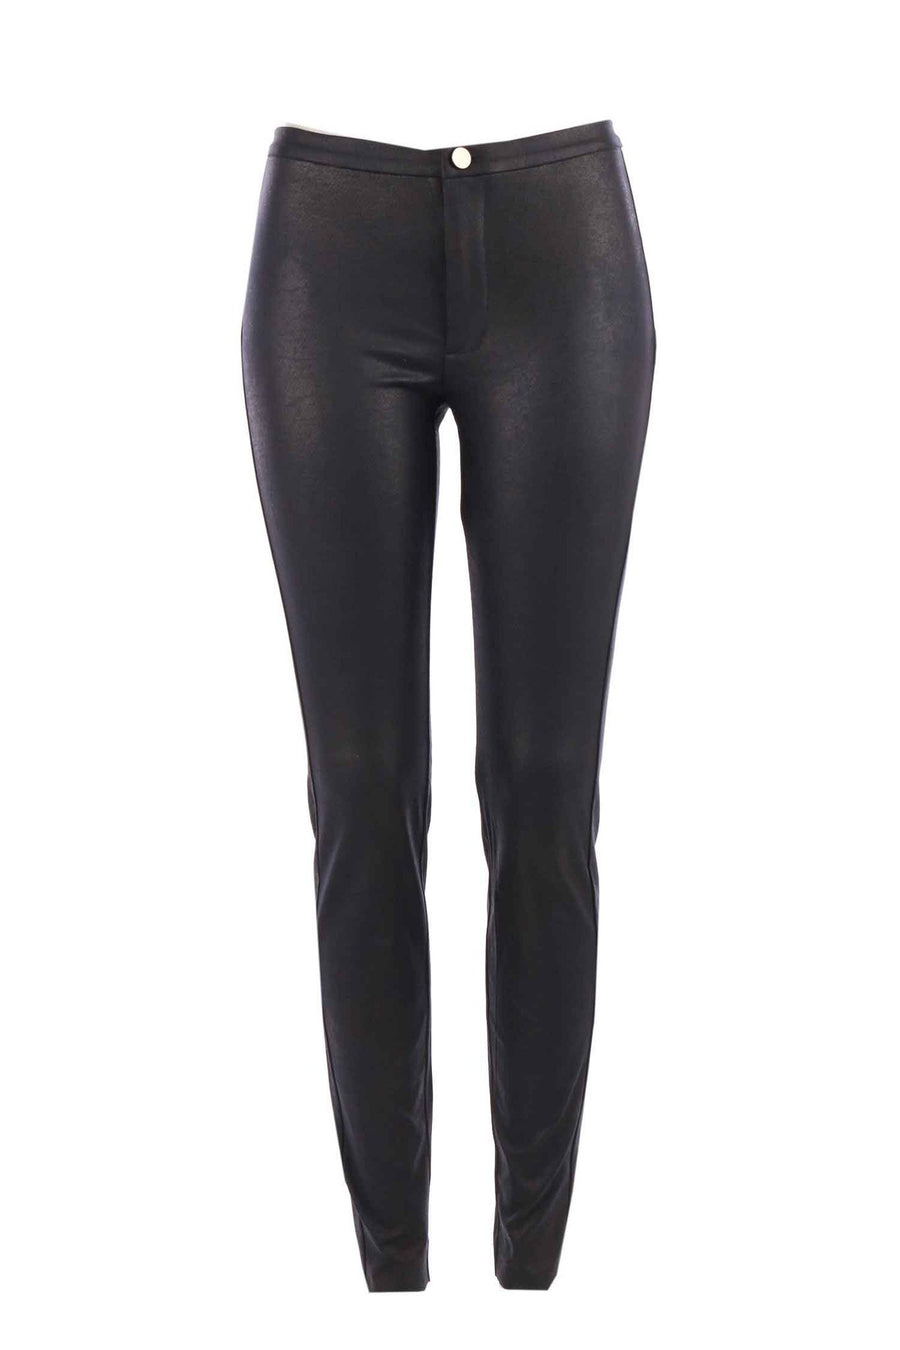 Jersey Legging Fake Leather by Yaya Frockaholics.com